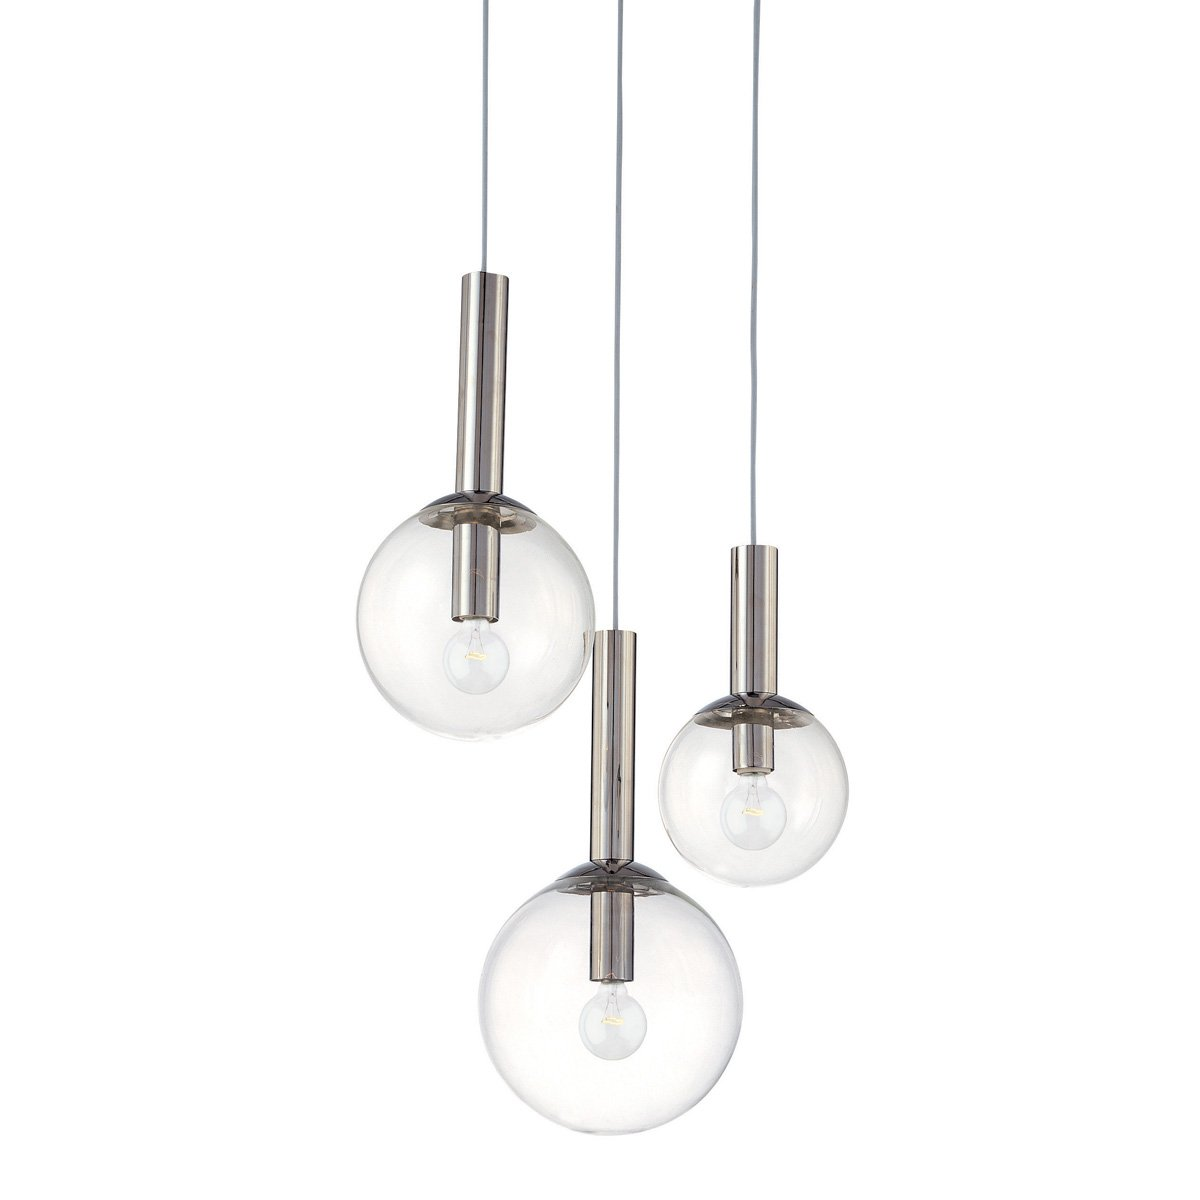 Bubbles multi light pendant 3 lights